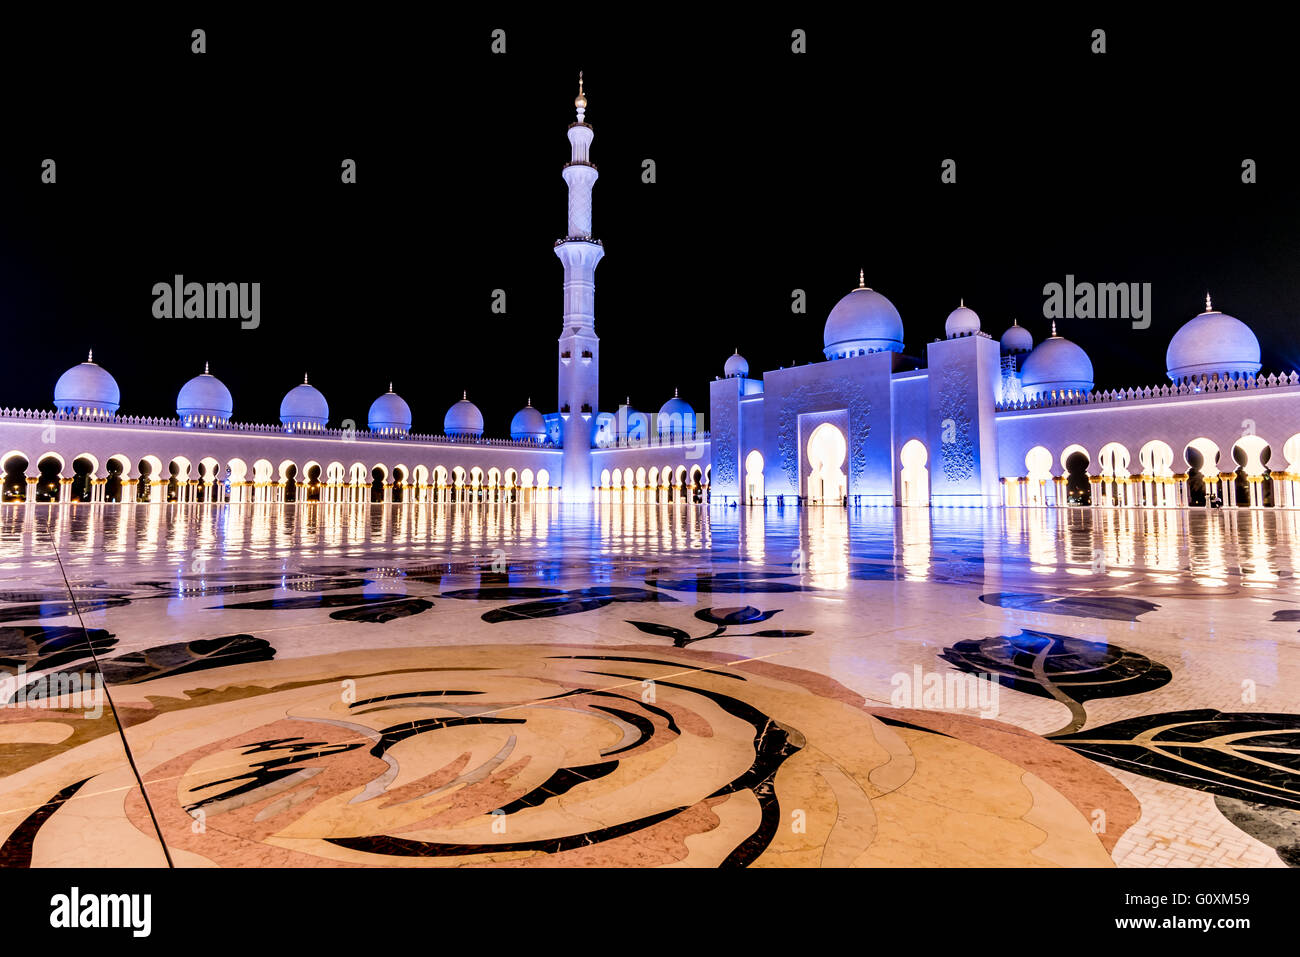 Zheikh Zayed Grand Mosque in Abu Dhabi at night bathed in a blue light - Stock Image